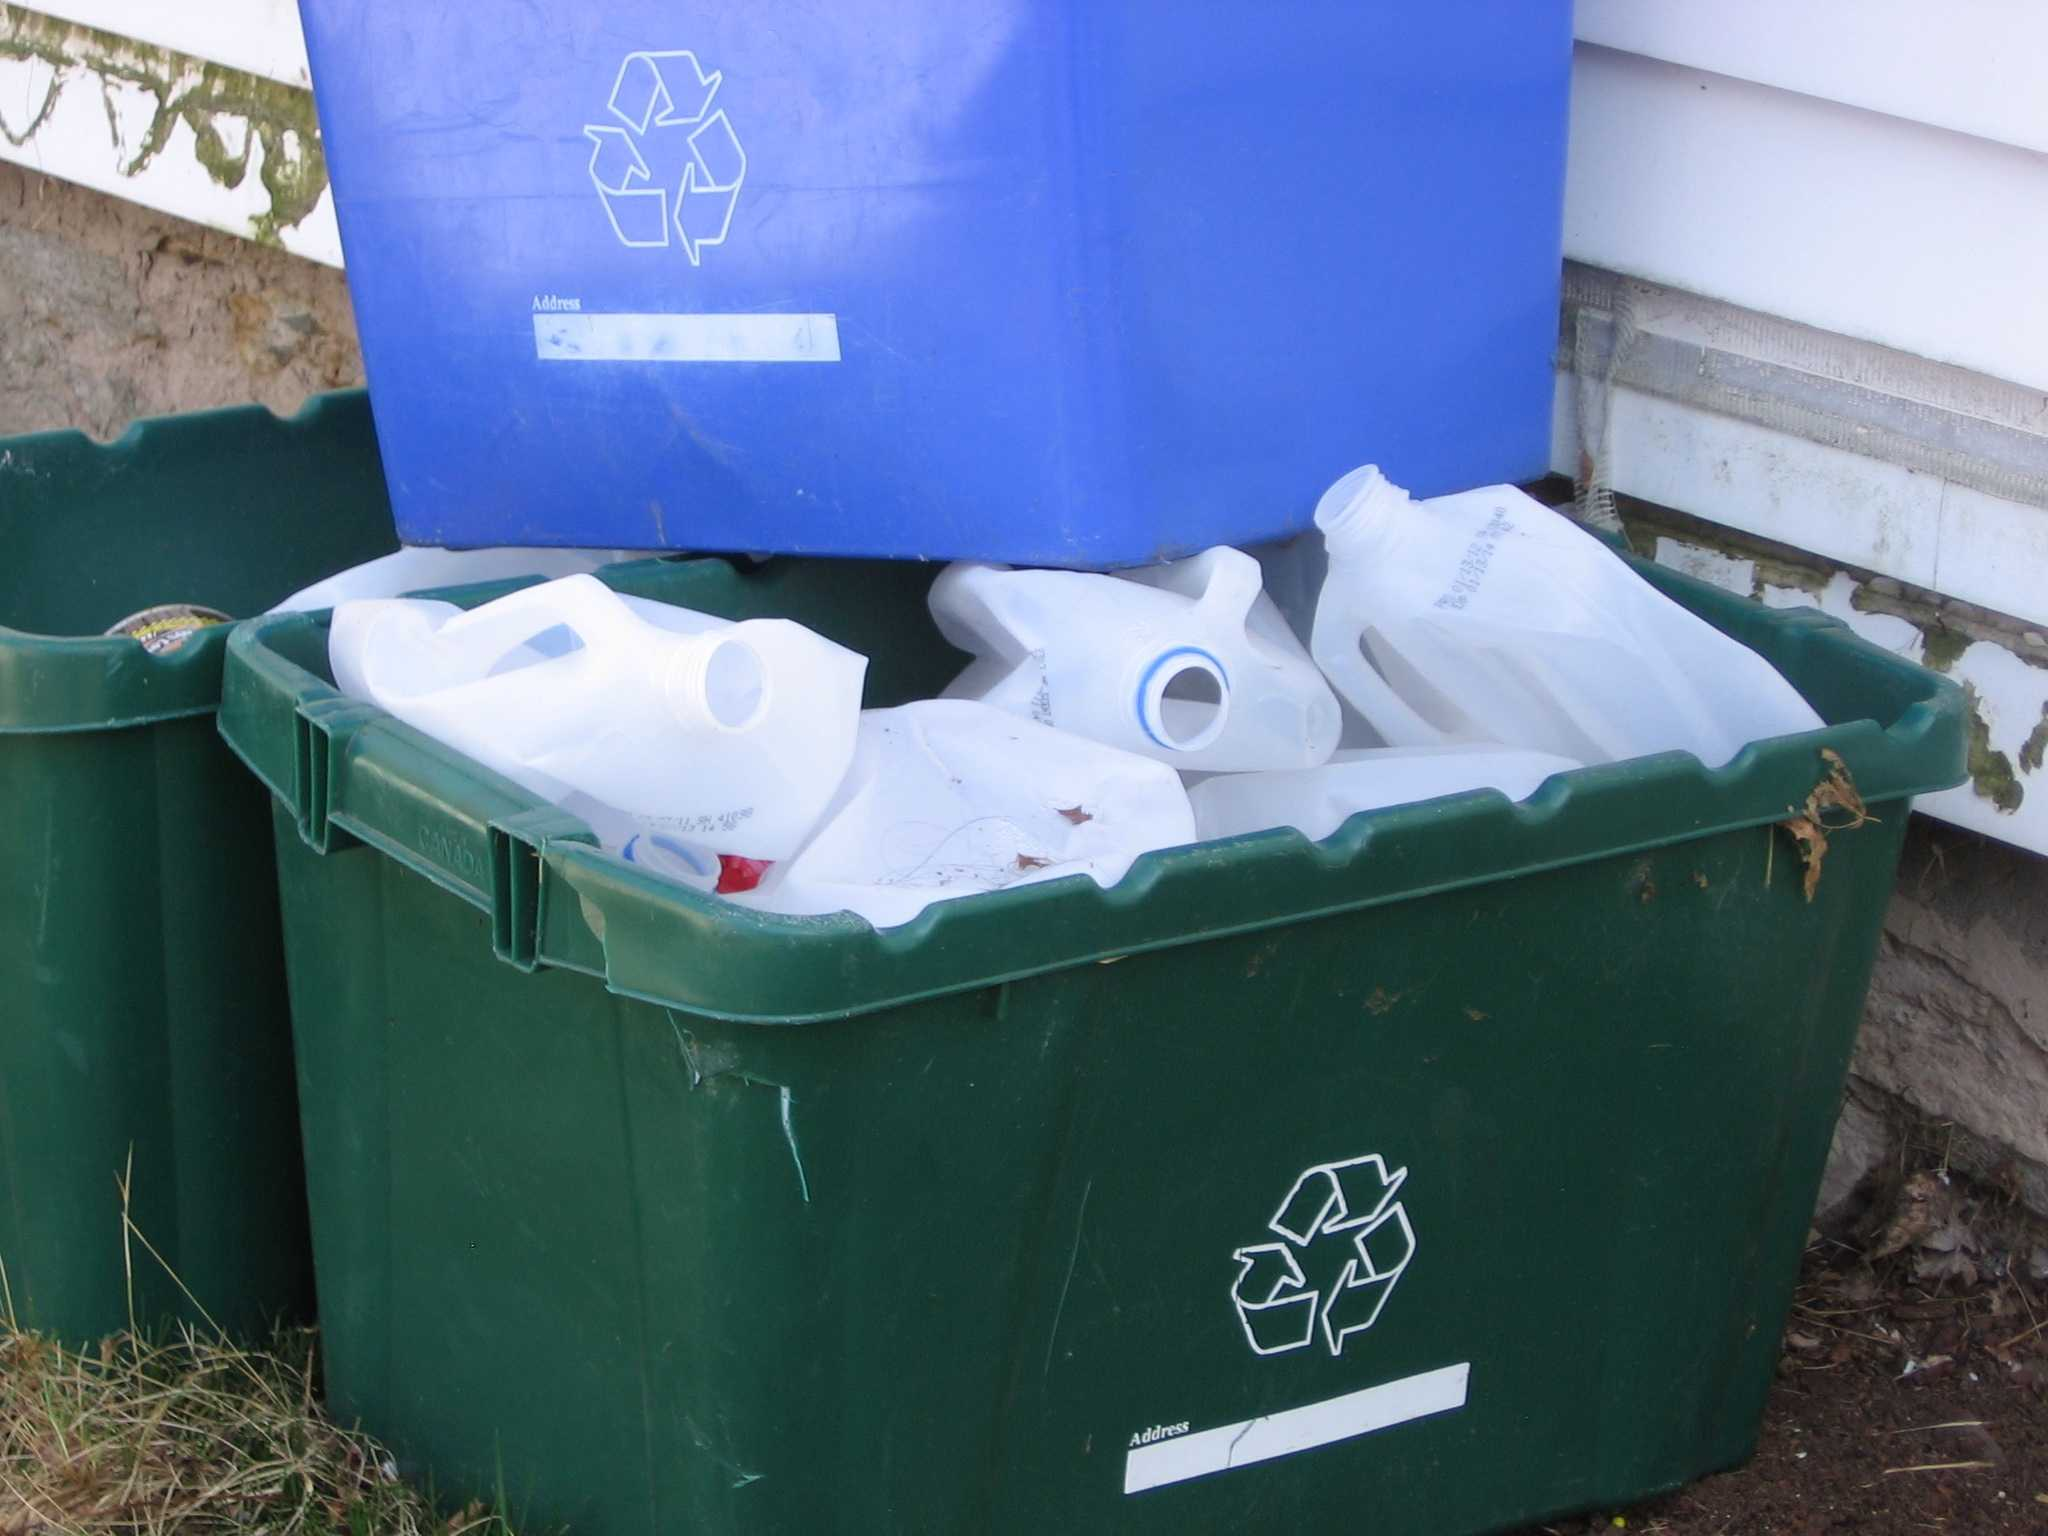 pic of recycling bins